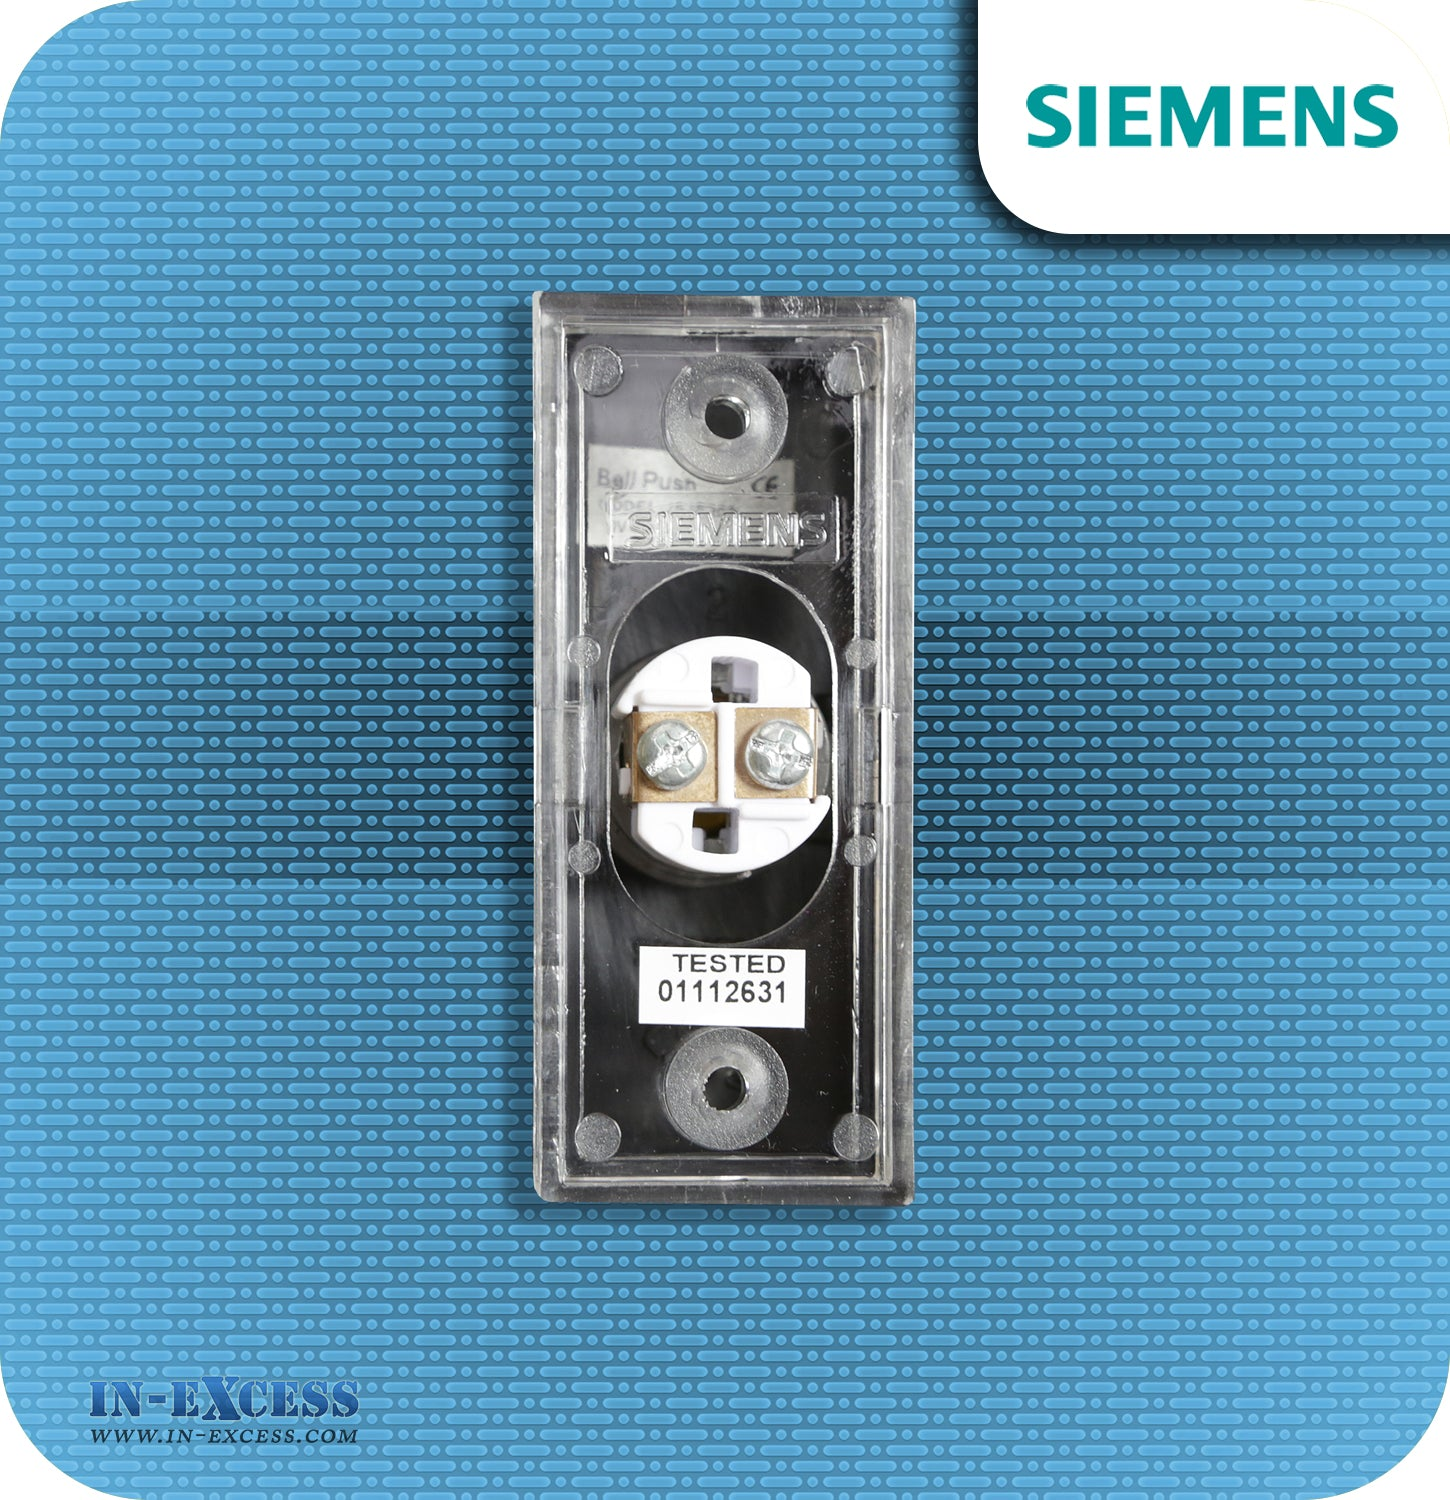 Siemens Backlit Black Wired Bell Push For Wired Door Chimes - JSJS ...